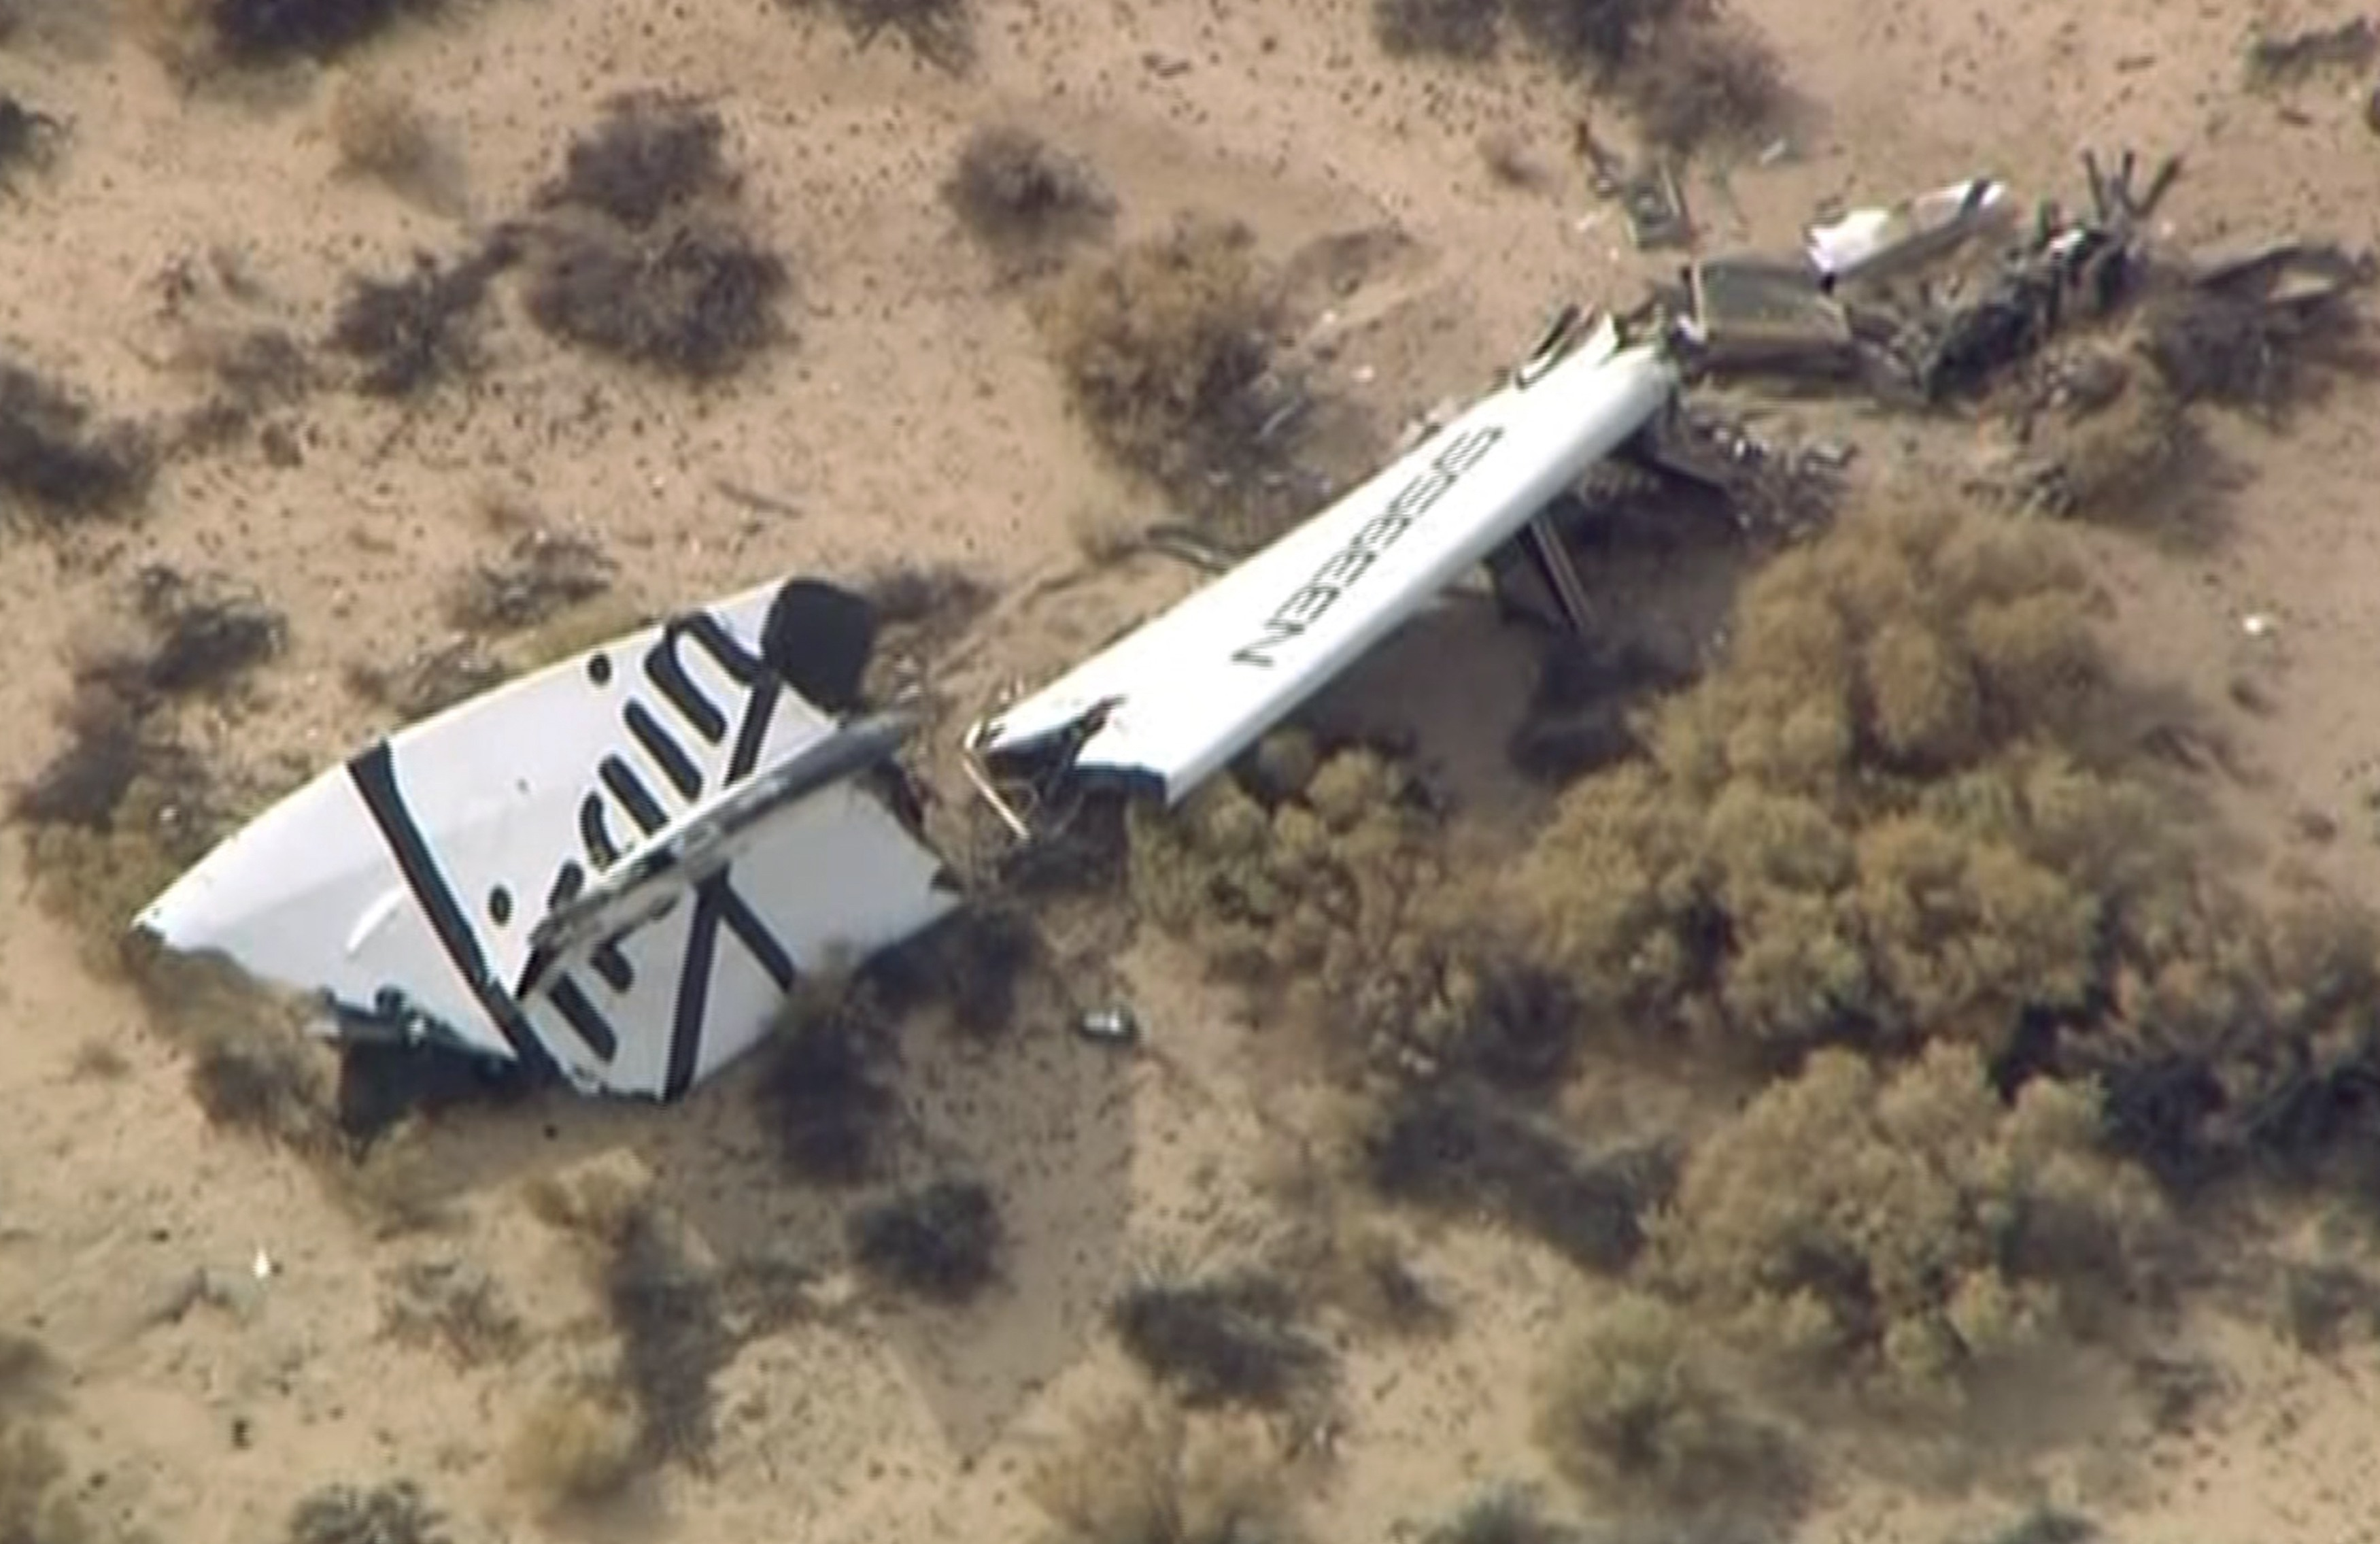 Virgin Galactic Crash: One Confirmed Dead In SpaceShipTwo ...